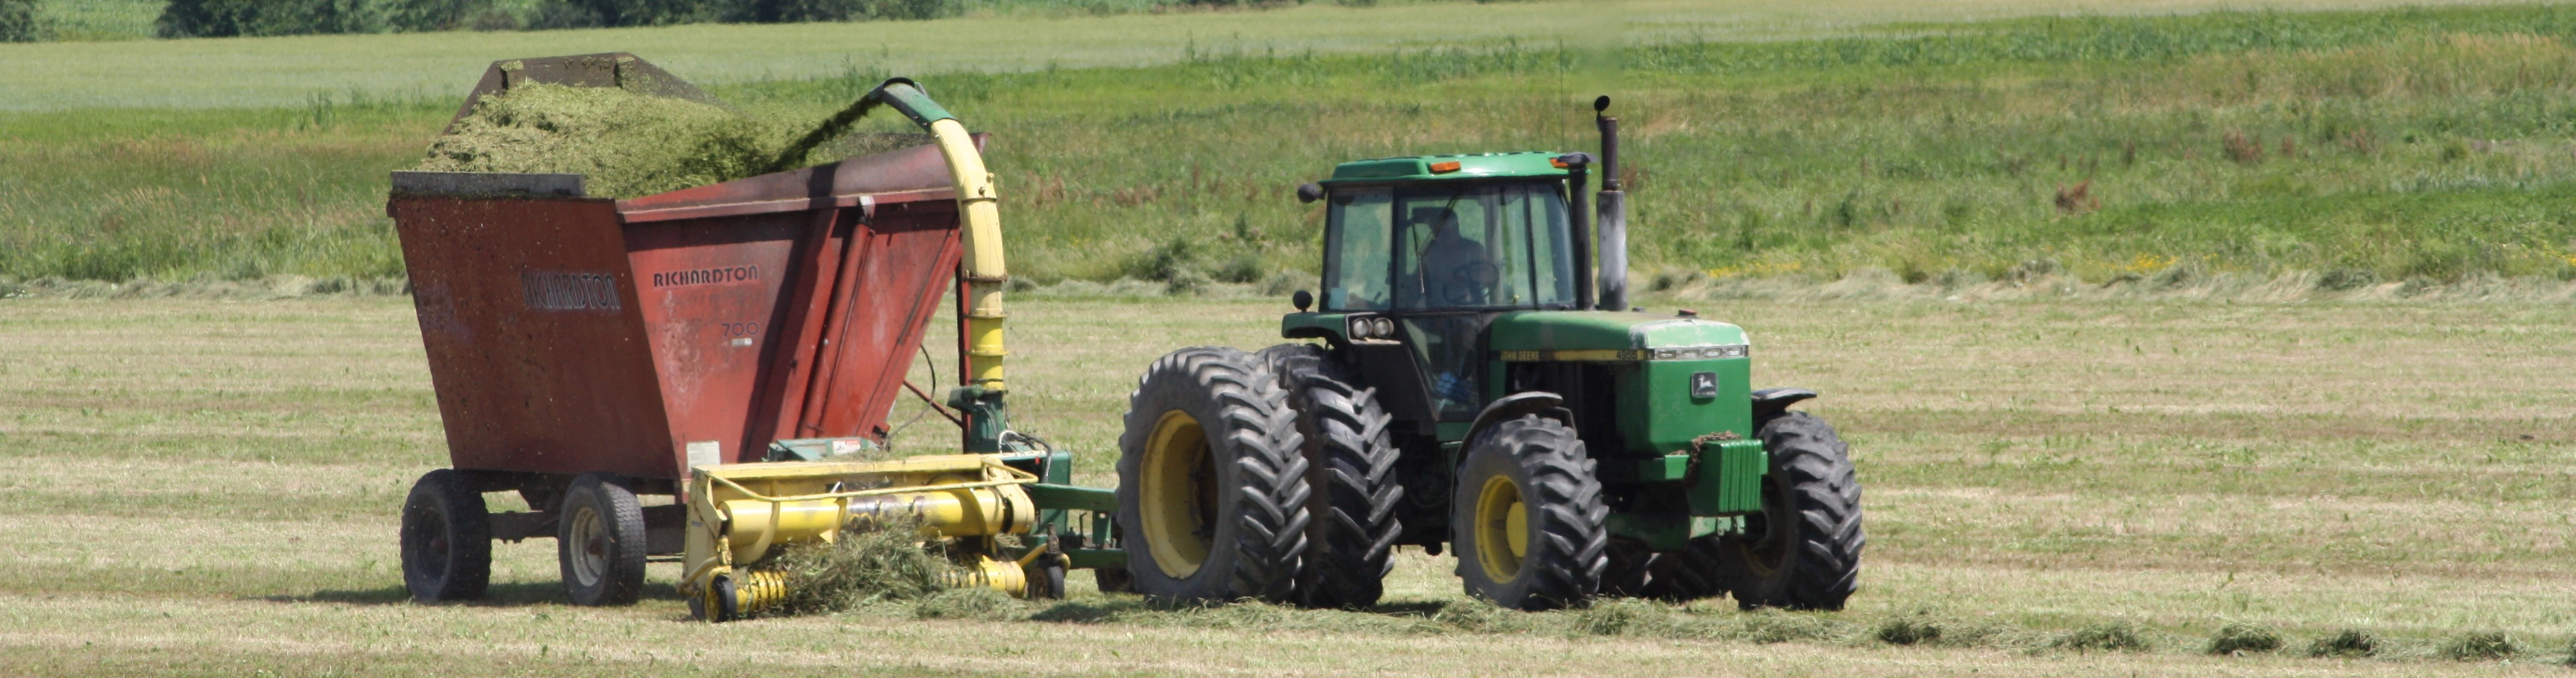 cutting hay in field